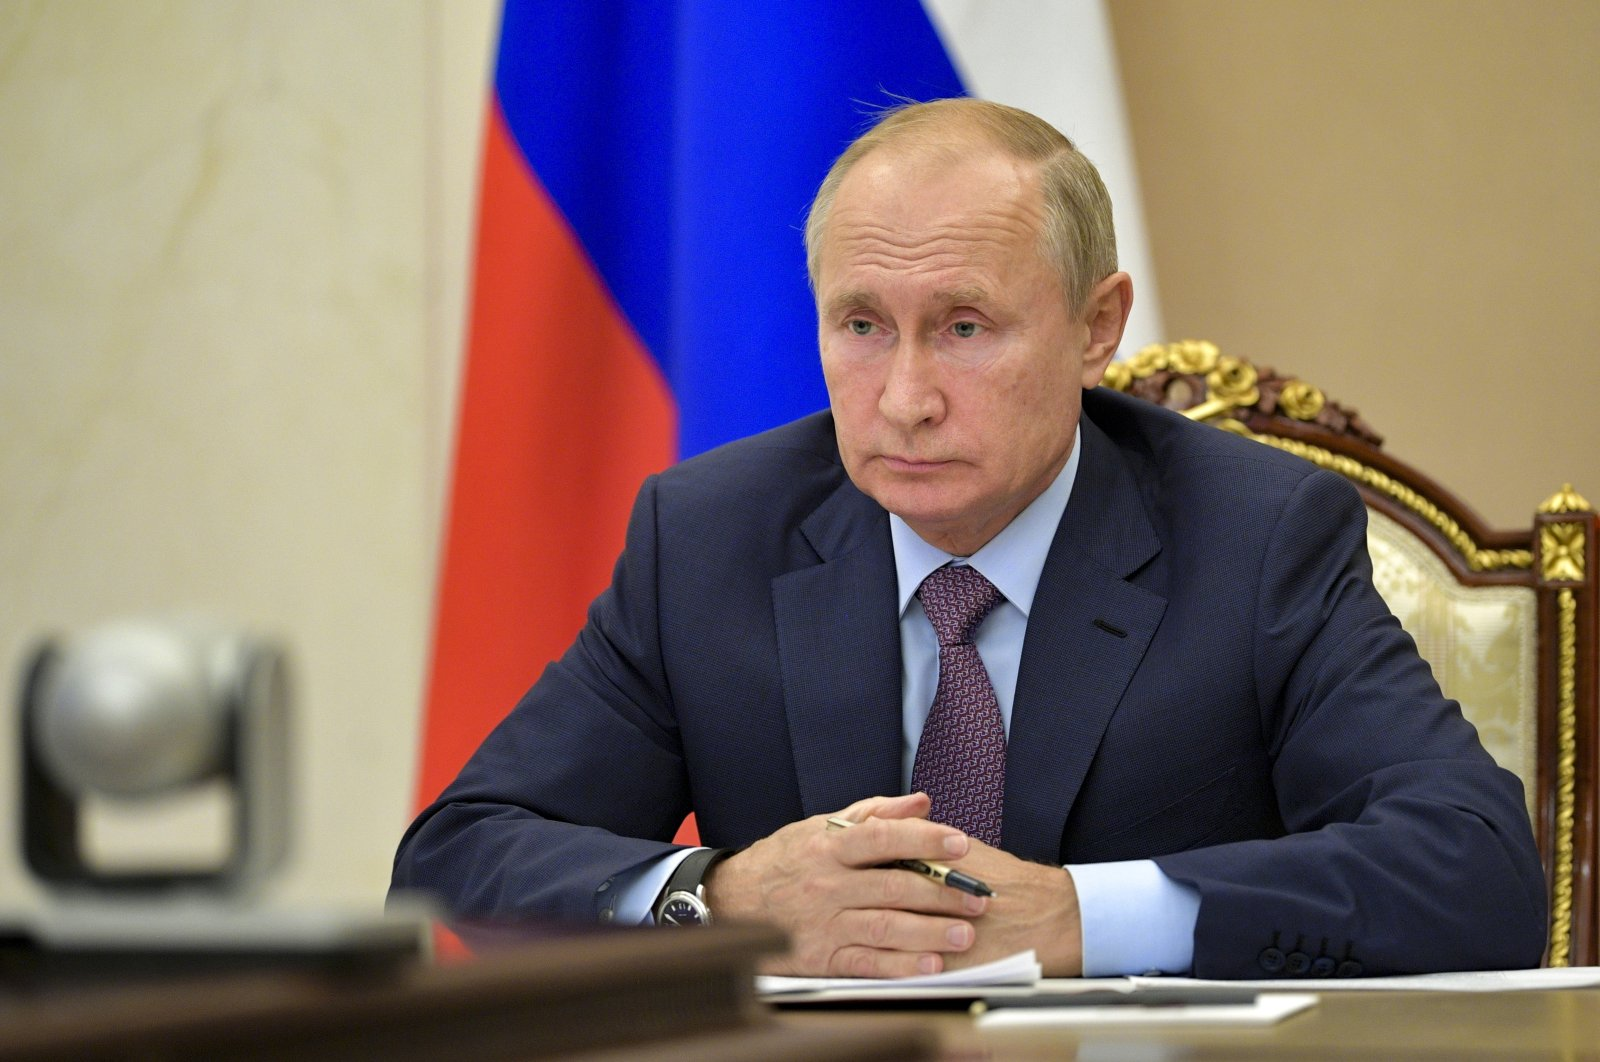 Russian President Vladimir Putin attends a meeting vis video conference at the Novo-Ogaryovo residence outside Moscow, Russia, Wednesday, Oct. 14, 2020. (AP Photo)